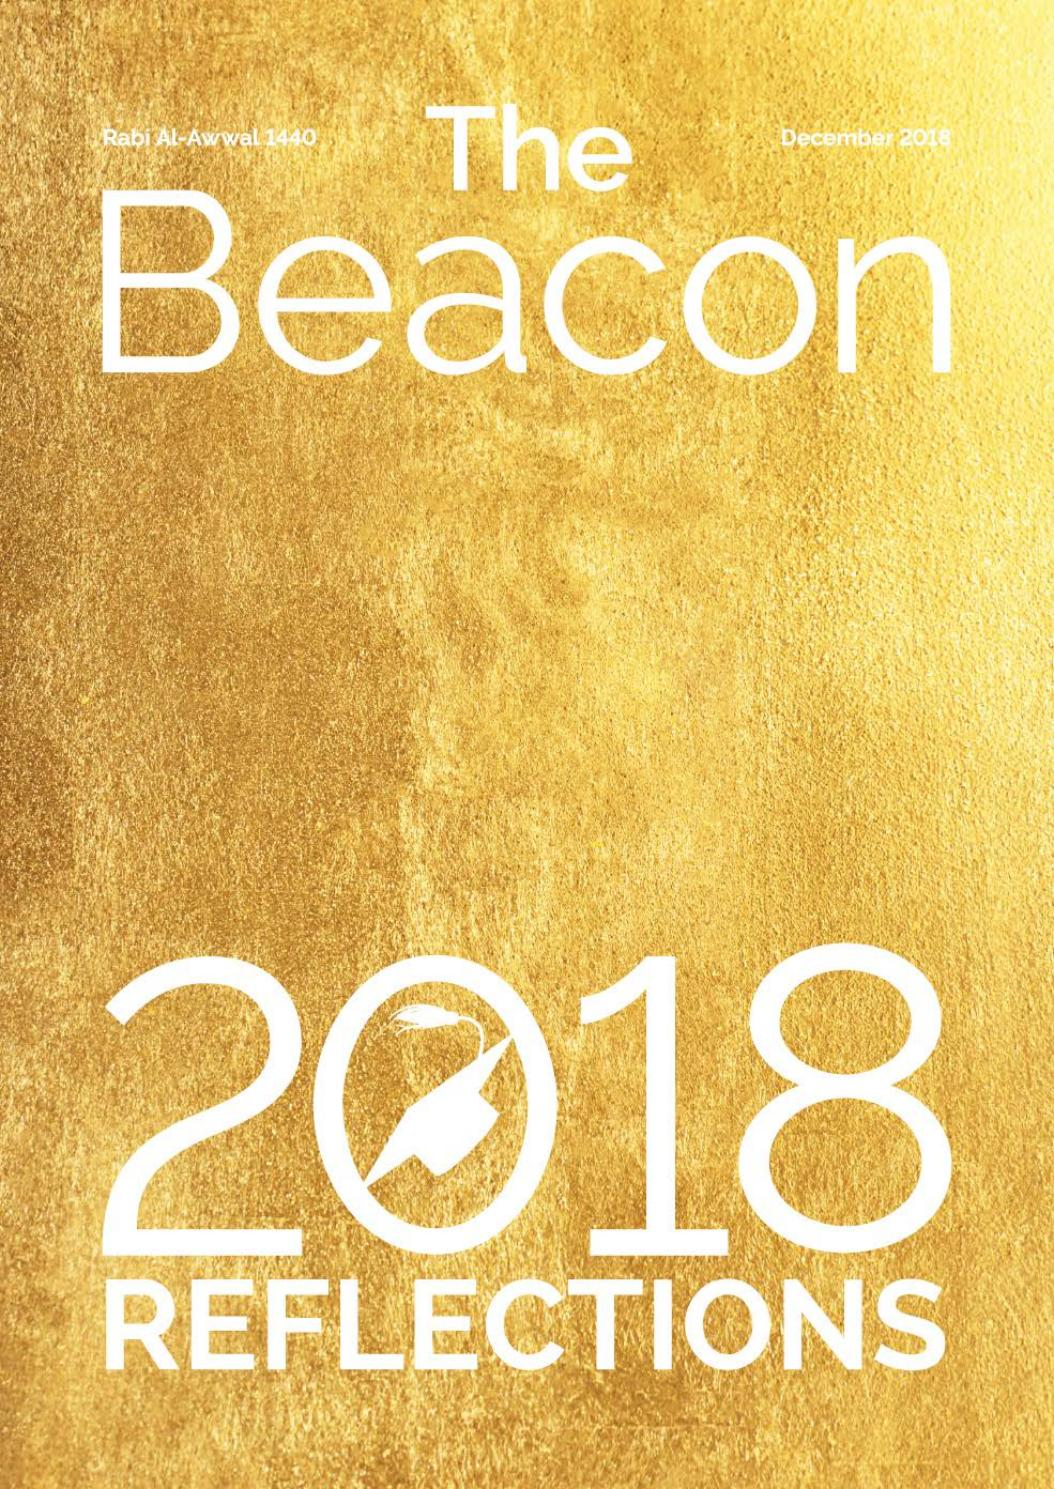 410d8f4abf513 2018 December Beacon by KAUST - issuu